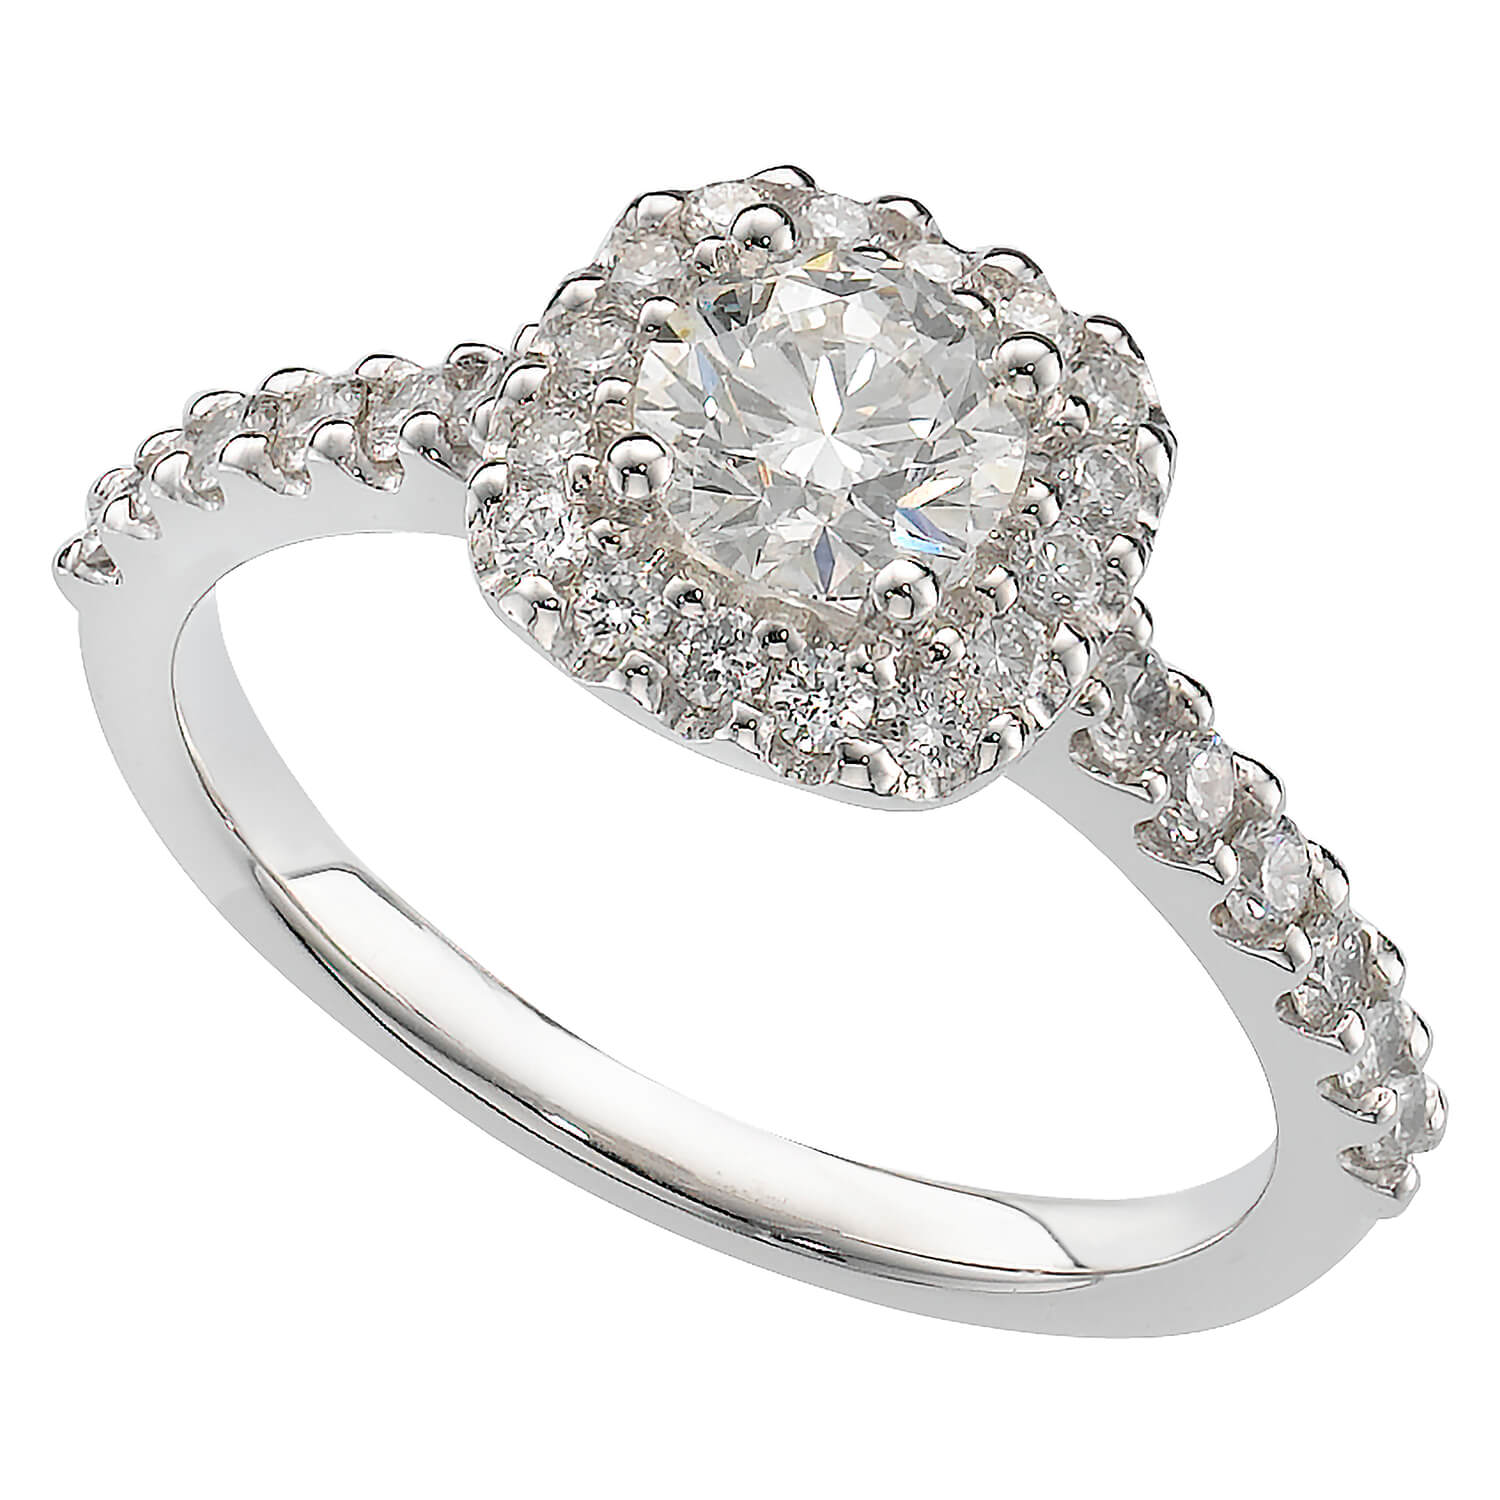 Brilliant Fire platinum 1.06 carat diamond cluster ring